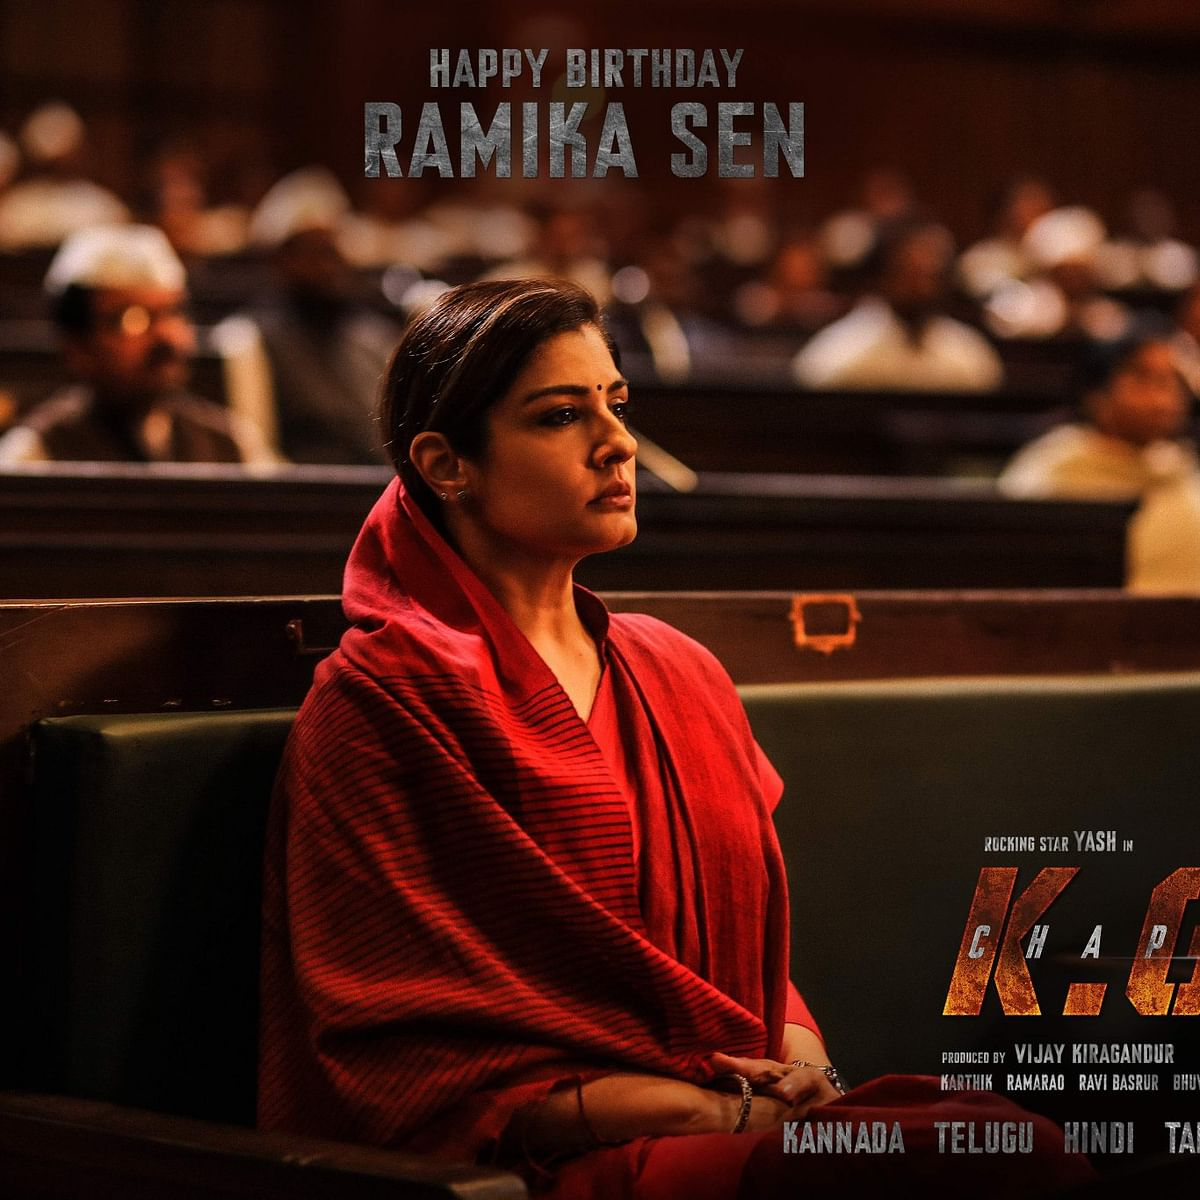 Makers of KGF 2 share Raveena Tandon's FIRST LOOK as 'Ramika Sen' on the actress's birthday